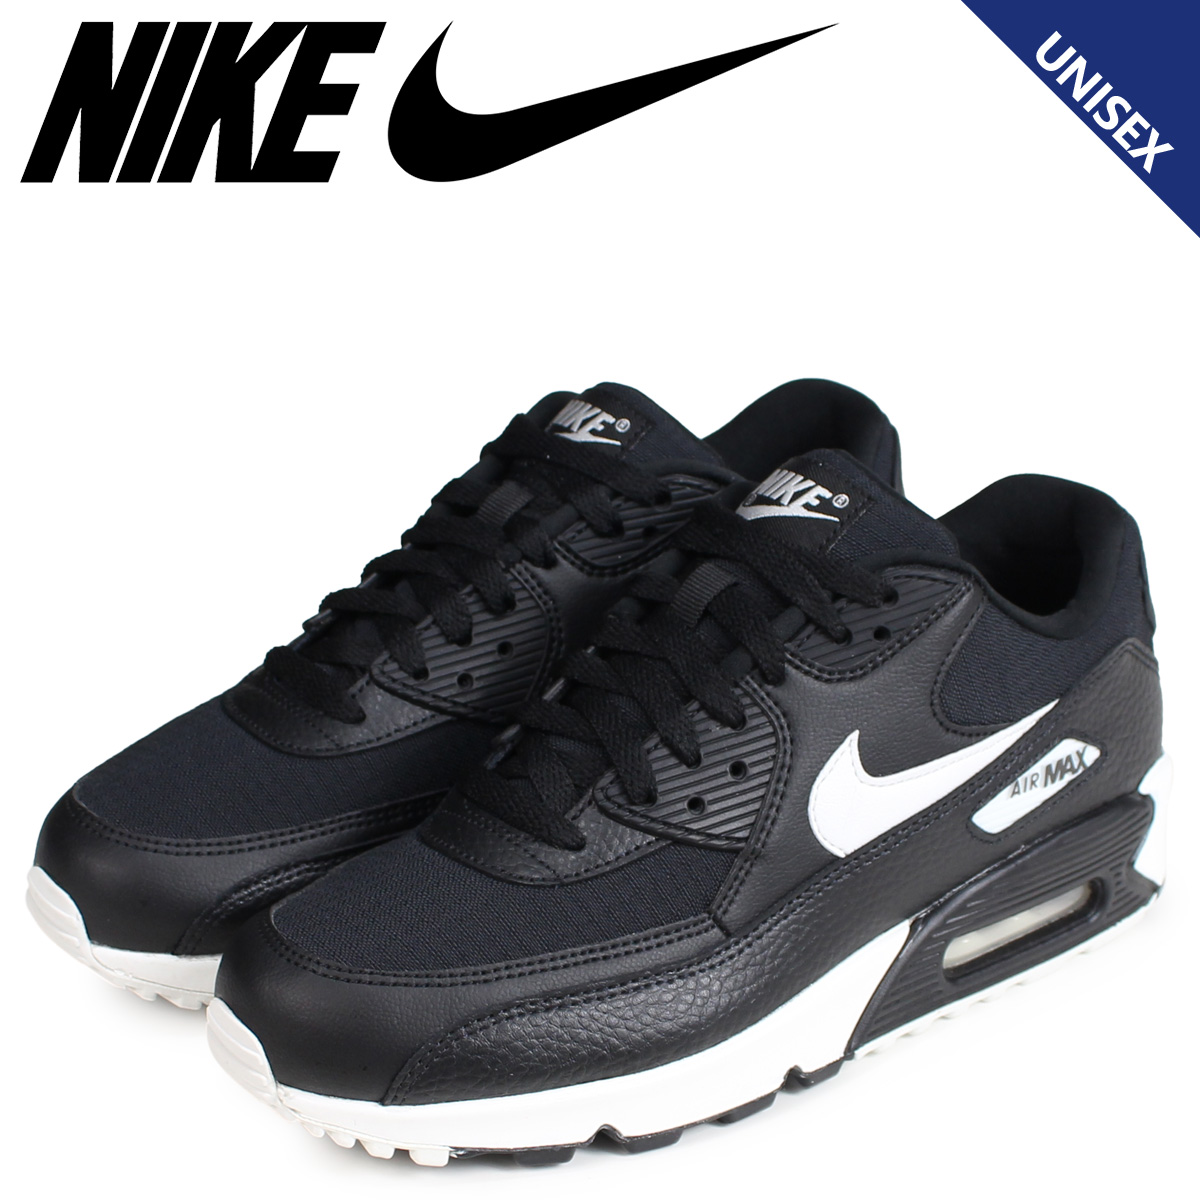 magasin en ligne 159cf e50c0 NIKE Kie Ney AMAX 90 sneakers Lady's men WMNS AIR MAX 90 black black  325,213-060 [the load planned additional arrival in reservation product  9/13 ...